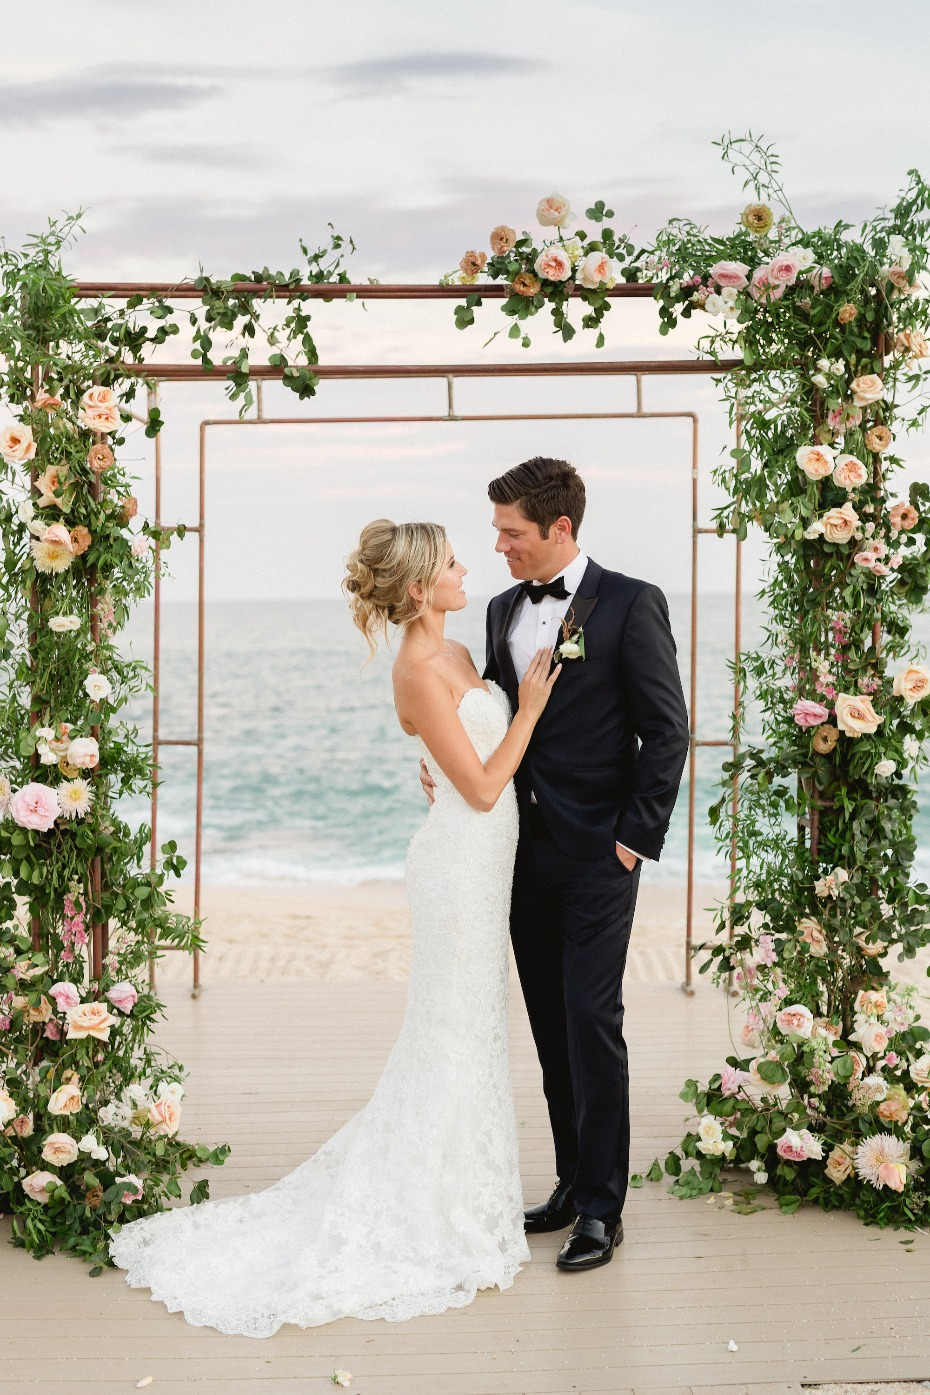 Floral arch on the beach